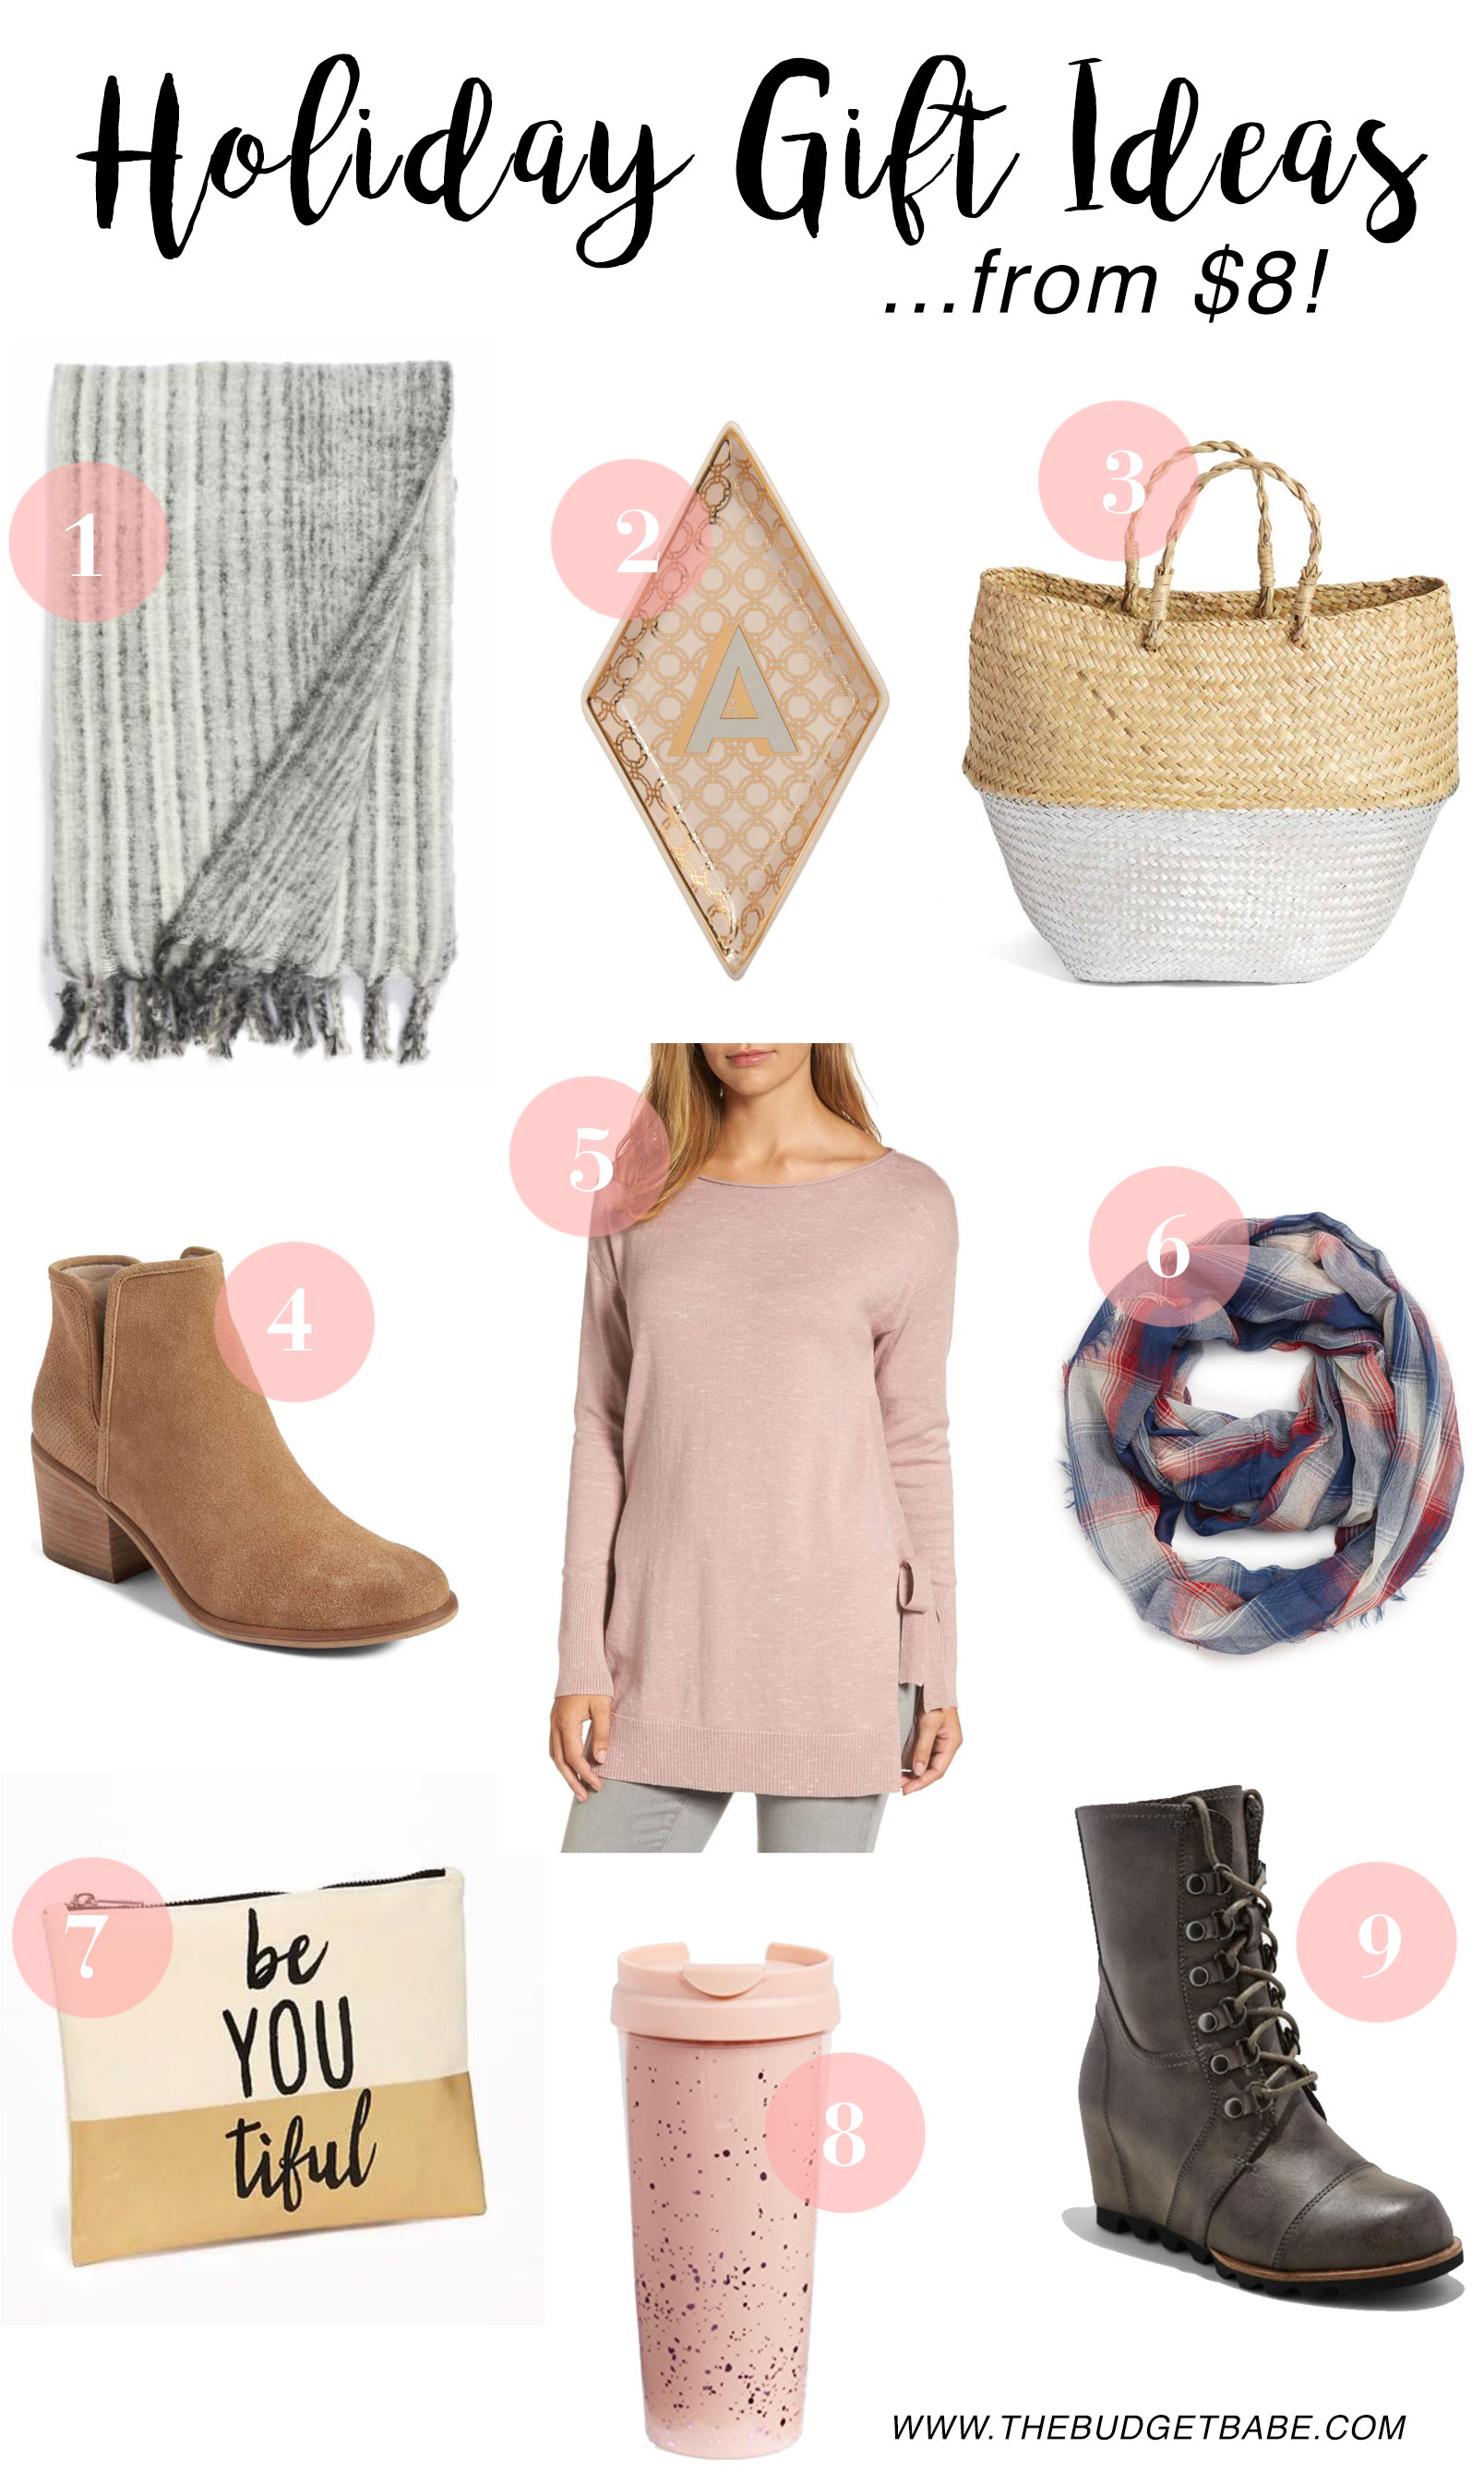 Holiday Gift Guide Ideas on a Budget from Fashion Blog The Budget Babe